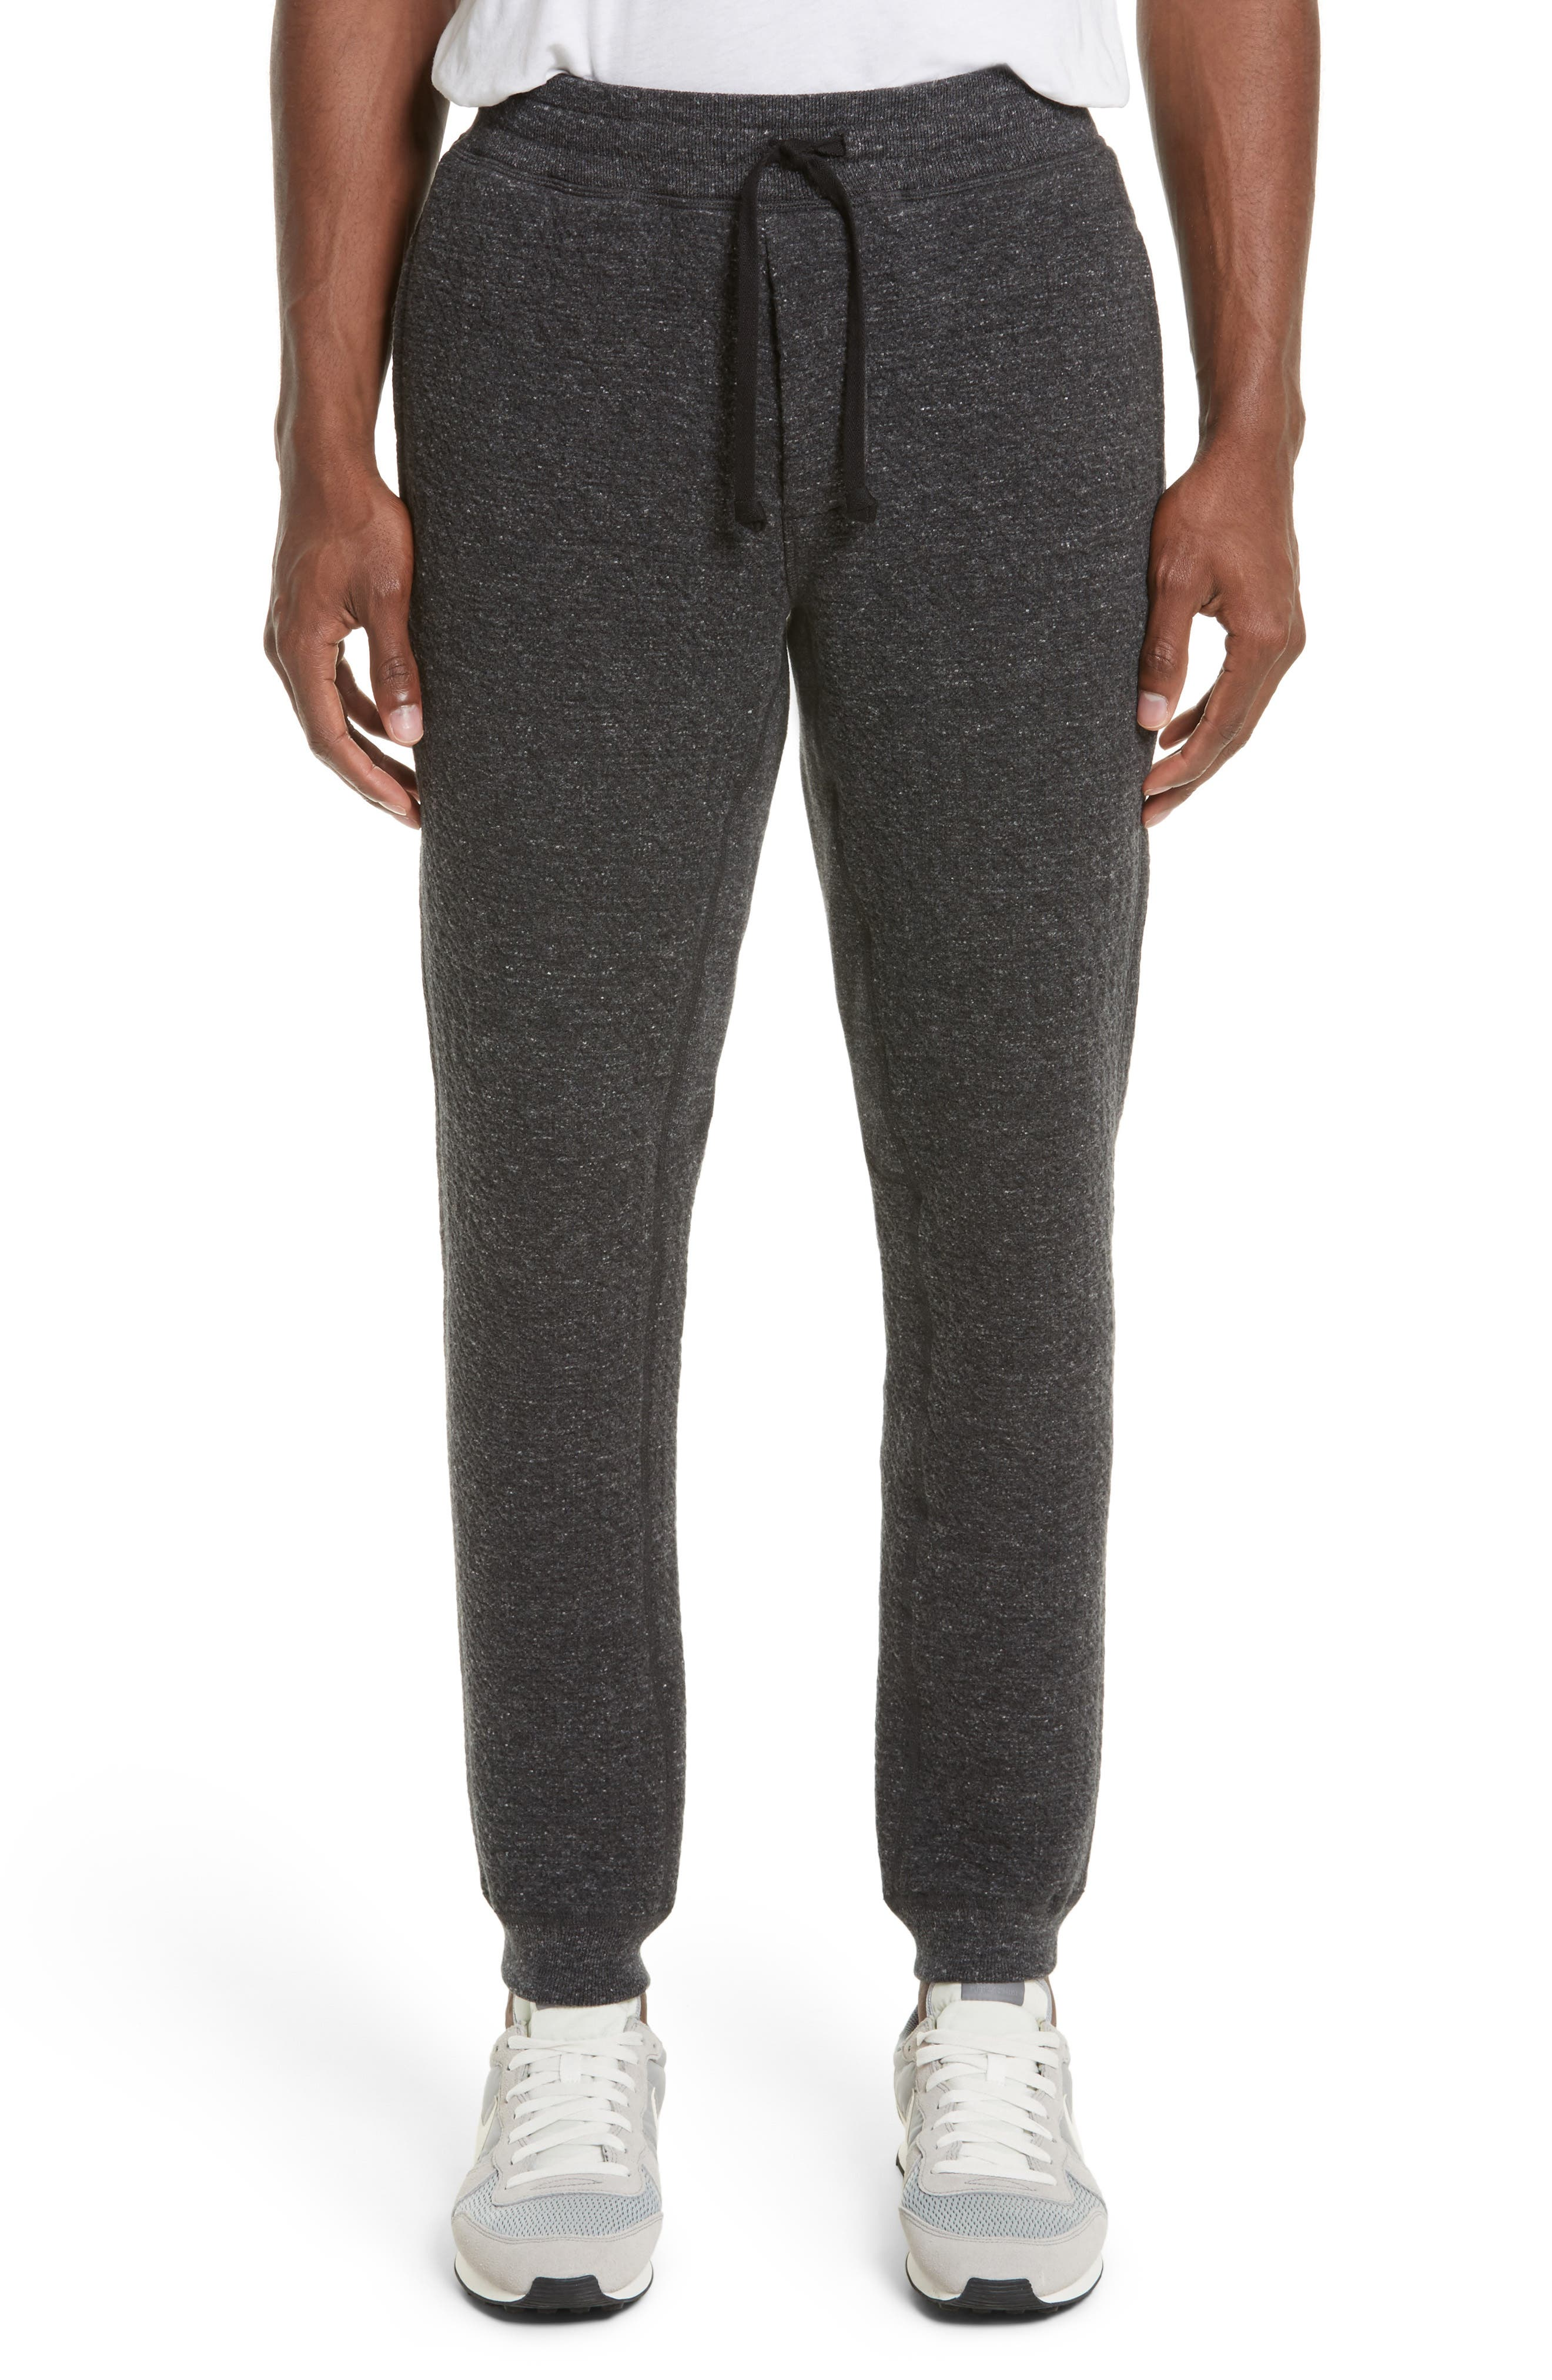 Alternate Image 1 Selected - wings + horns Cabin Fleece Sweatpants